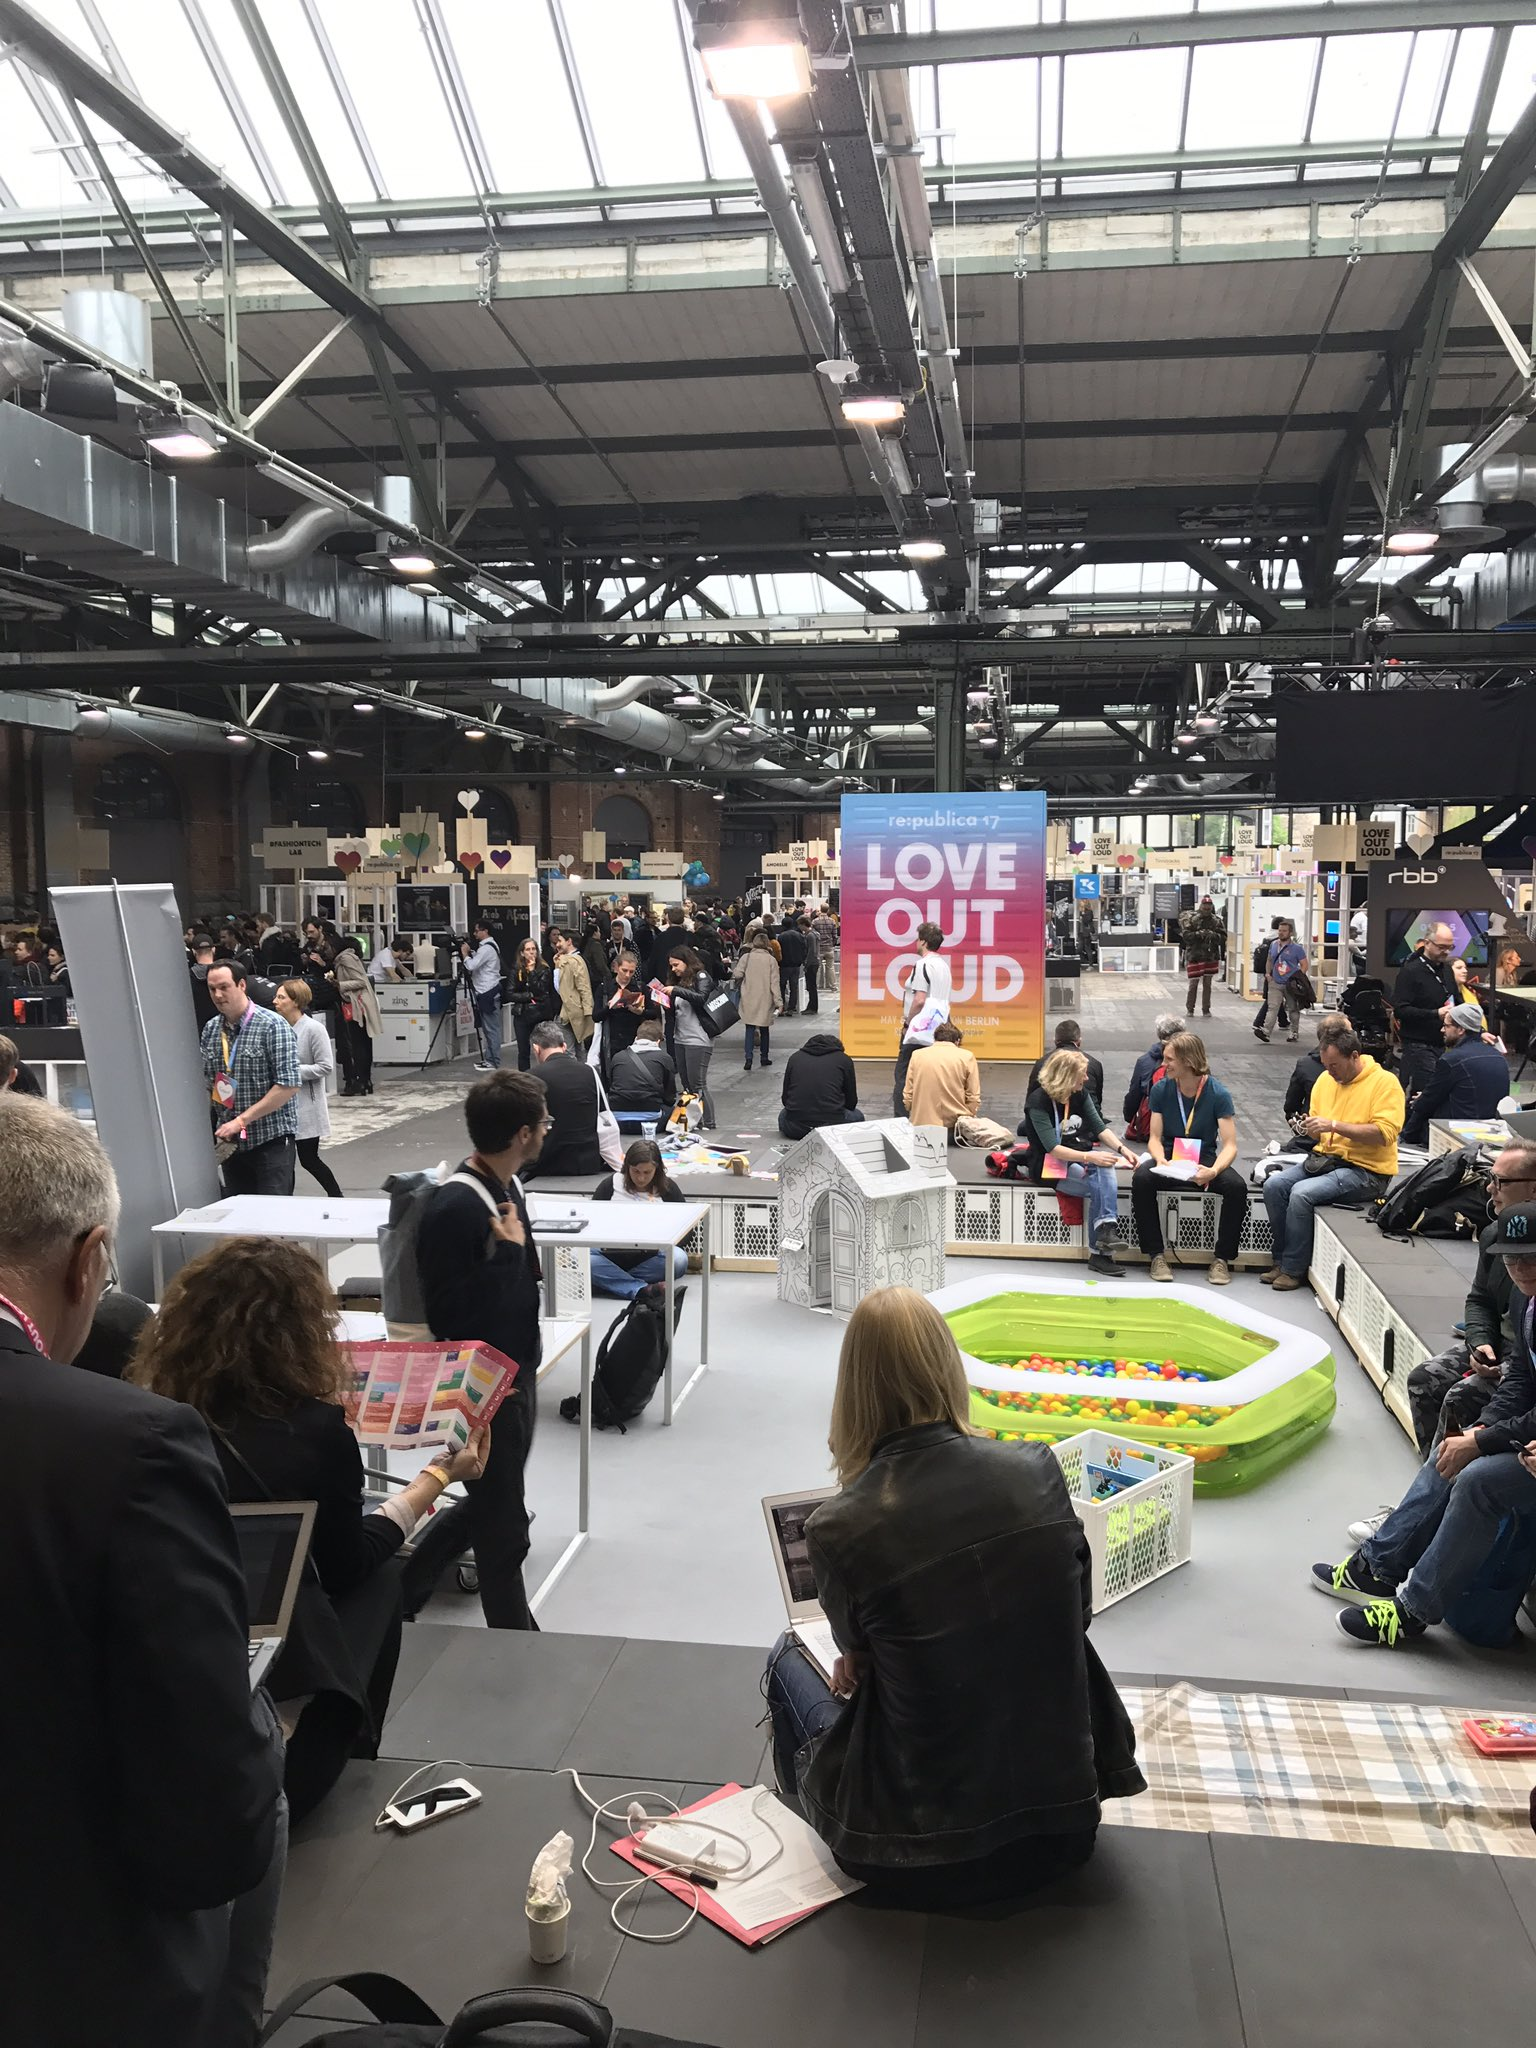 Thumbnail for #rp17: Kommunikation und Transformation